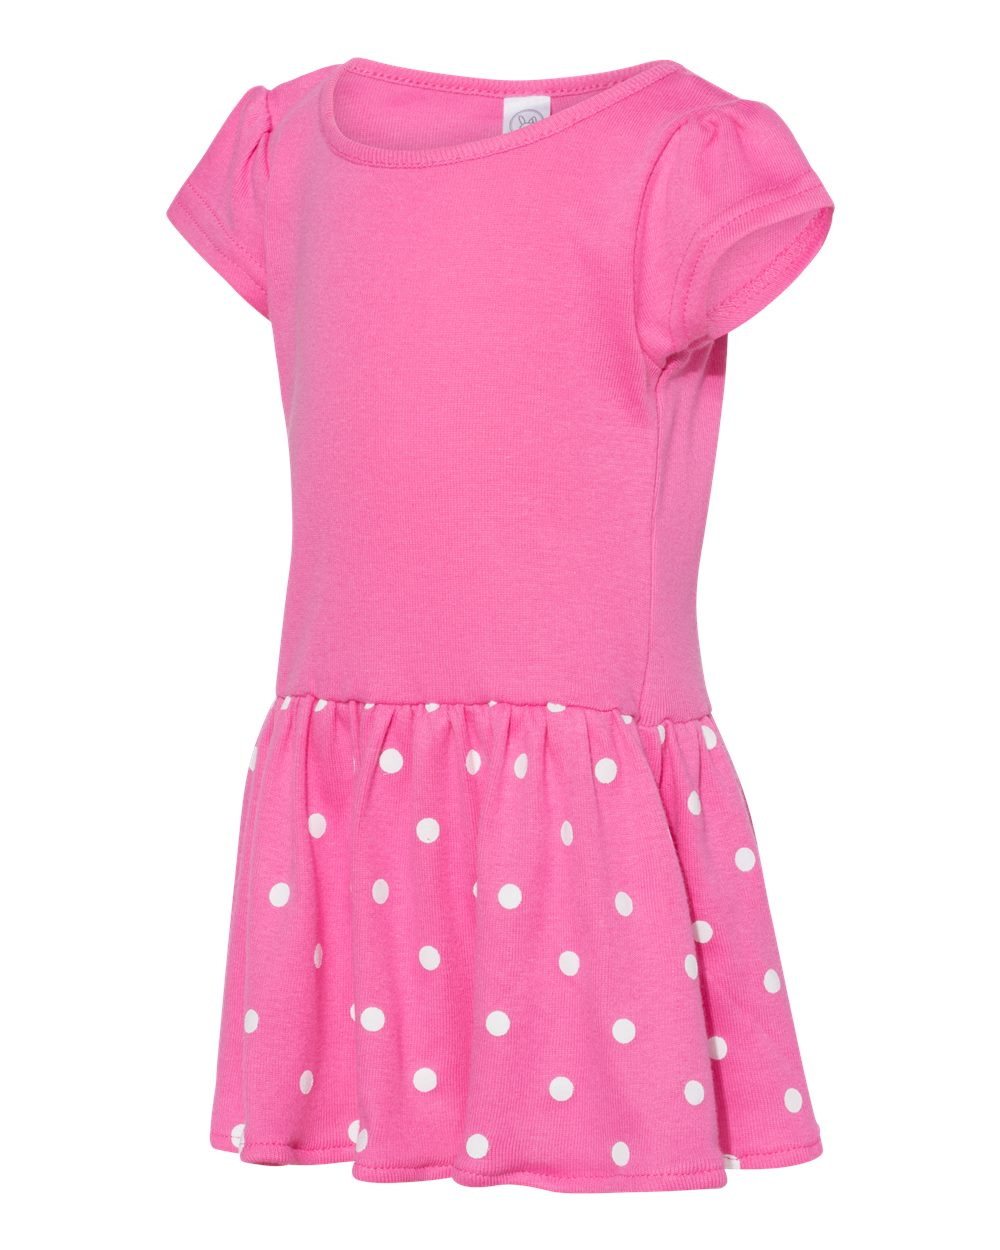 Rabbit Skins 5320 - Infant Baby Rib Dress